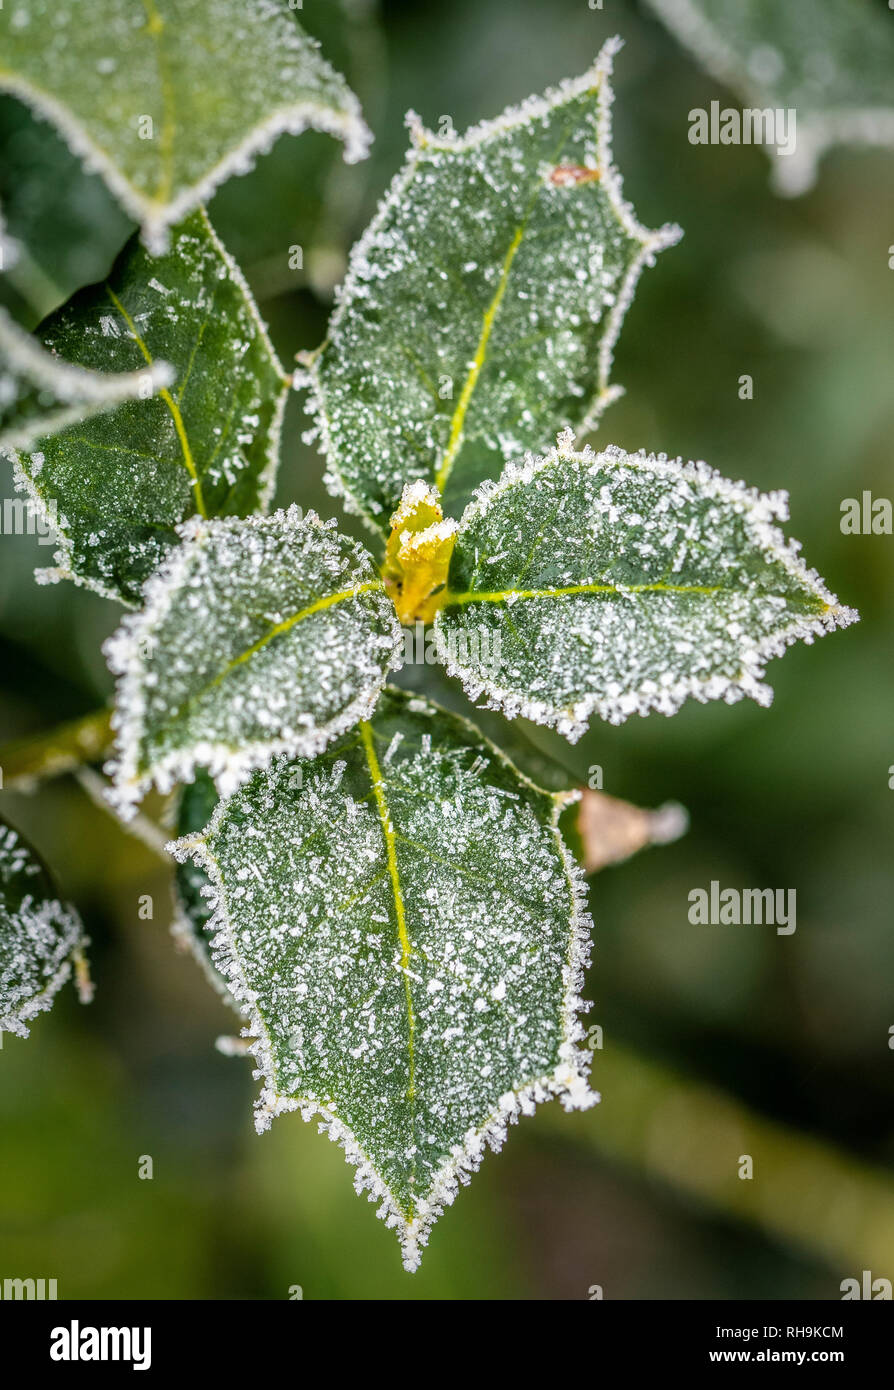 Holly leaves covered in frost. - Stock Image